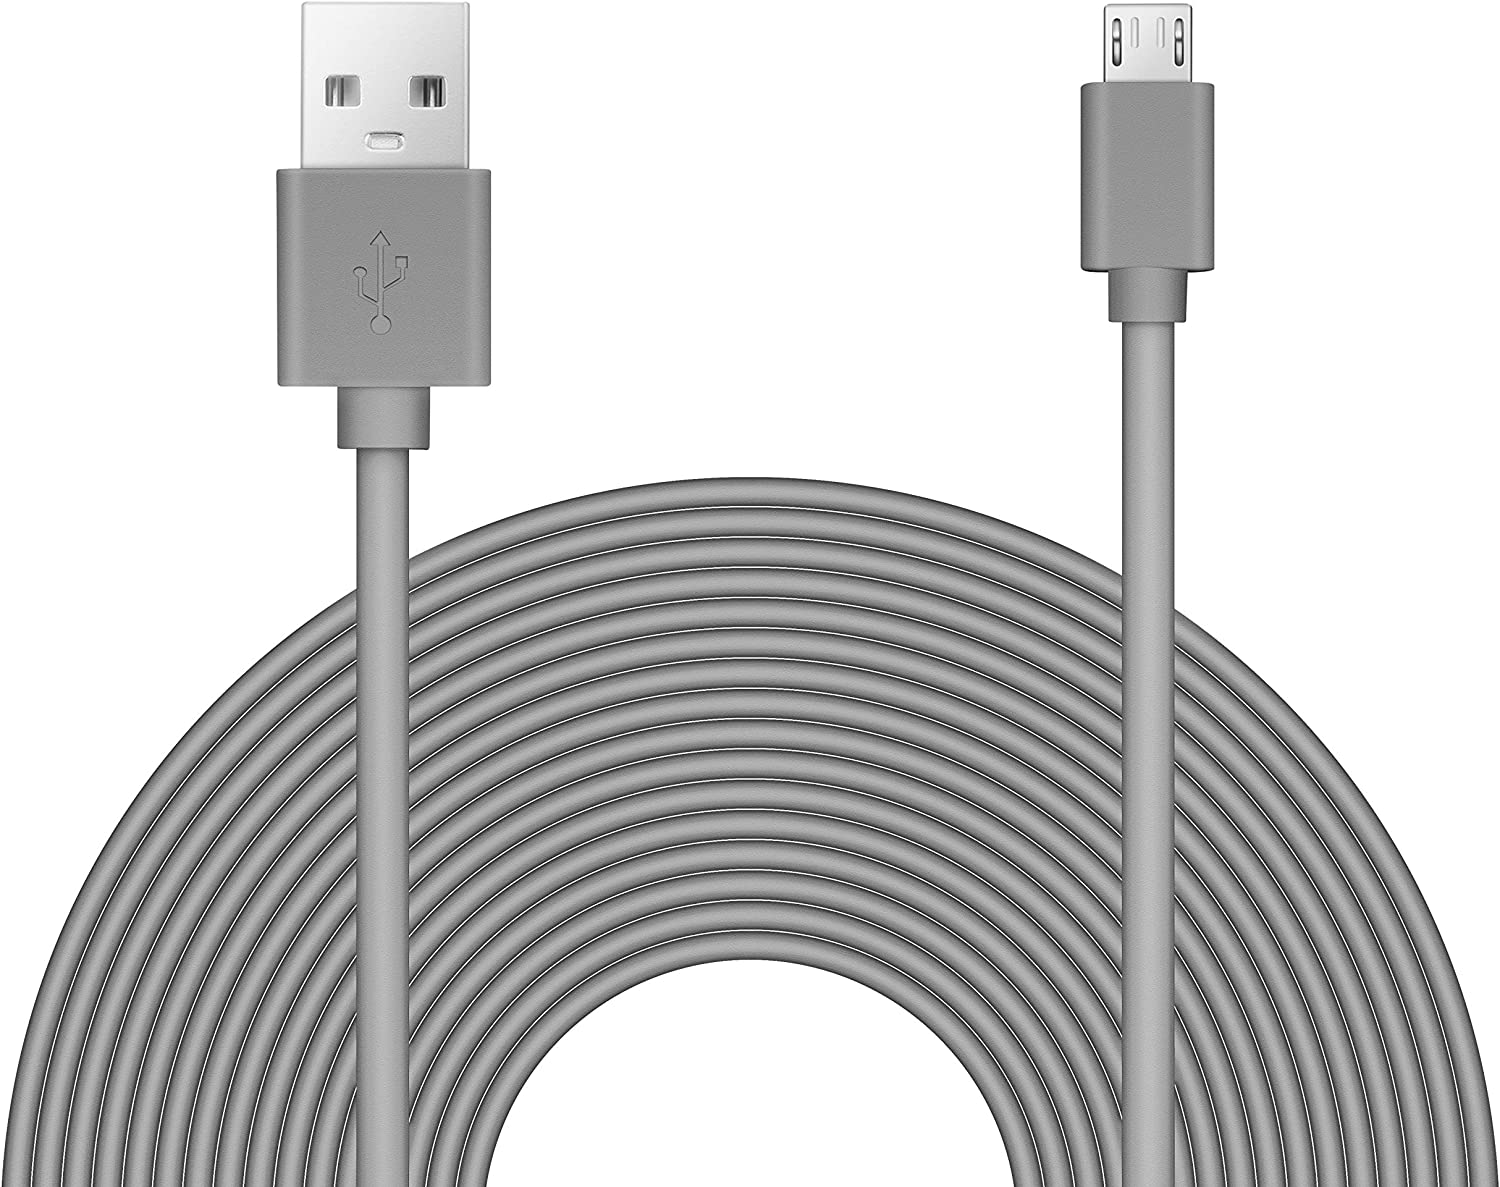 25ft Power Extension Cable Compatible with Blink Mini, Wyze, Playstation, Yi Dome, Home Camera - Charcoal